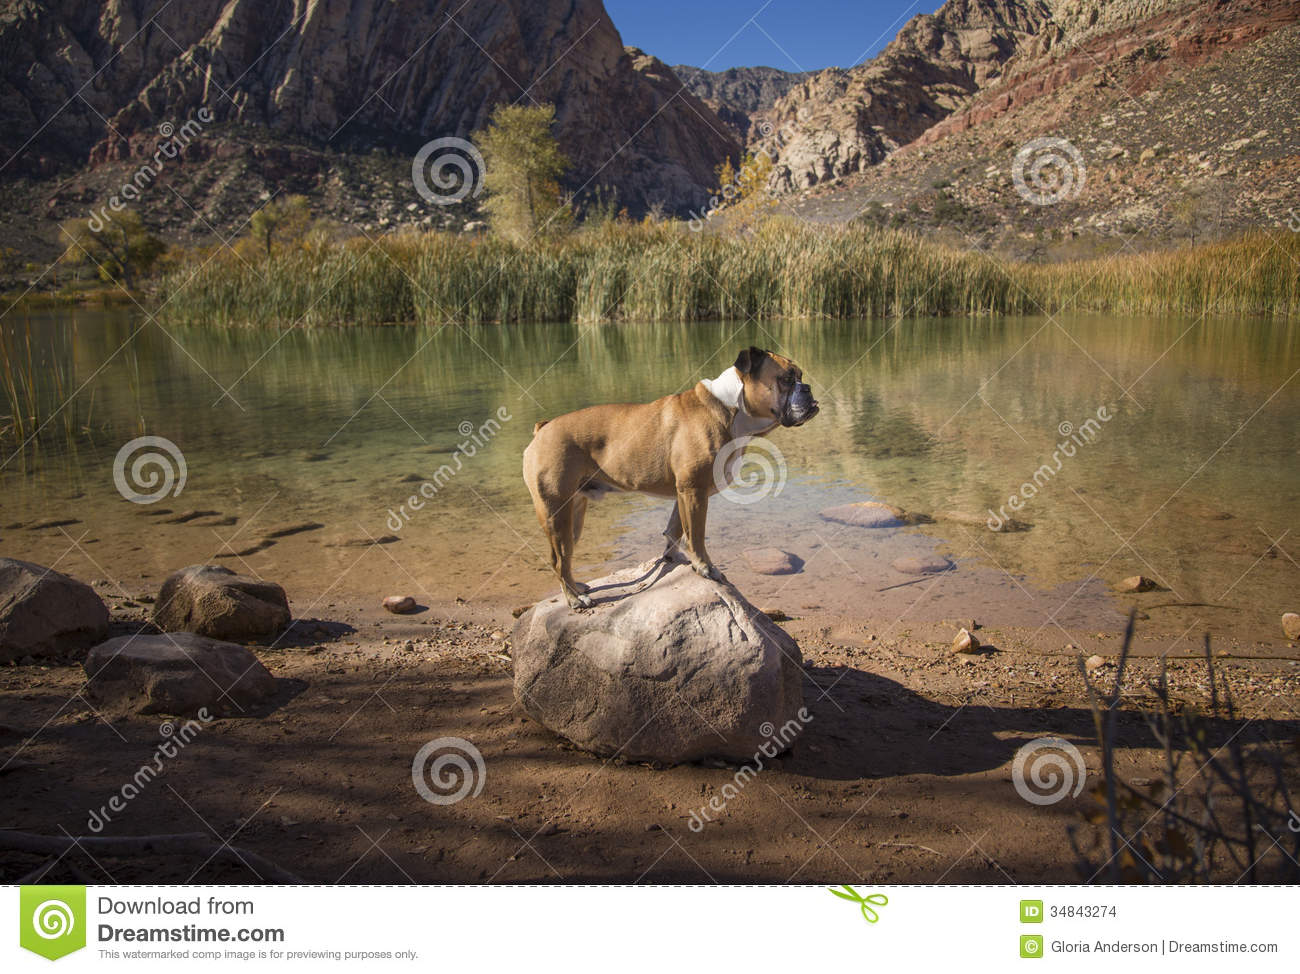 Bulldog posed on a rock by the water